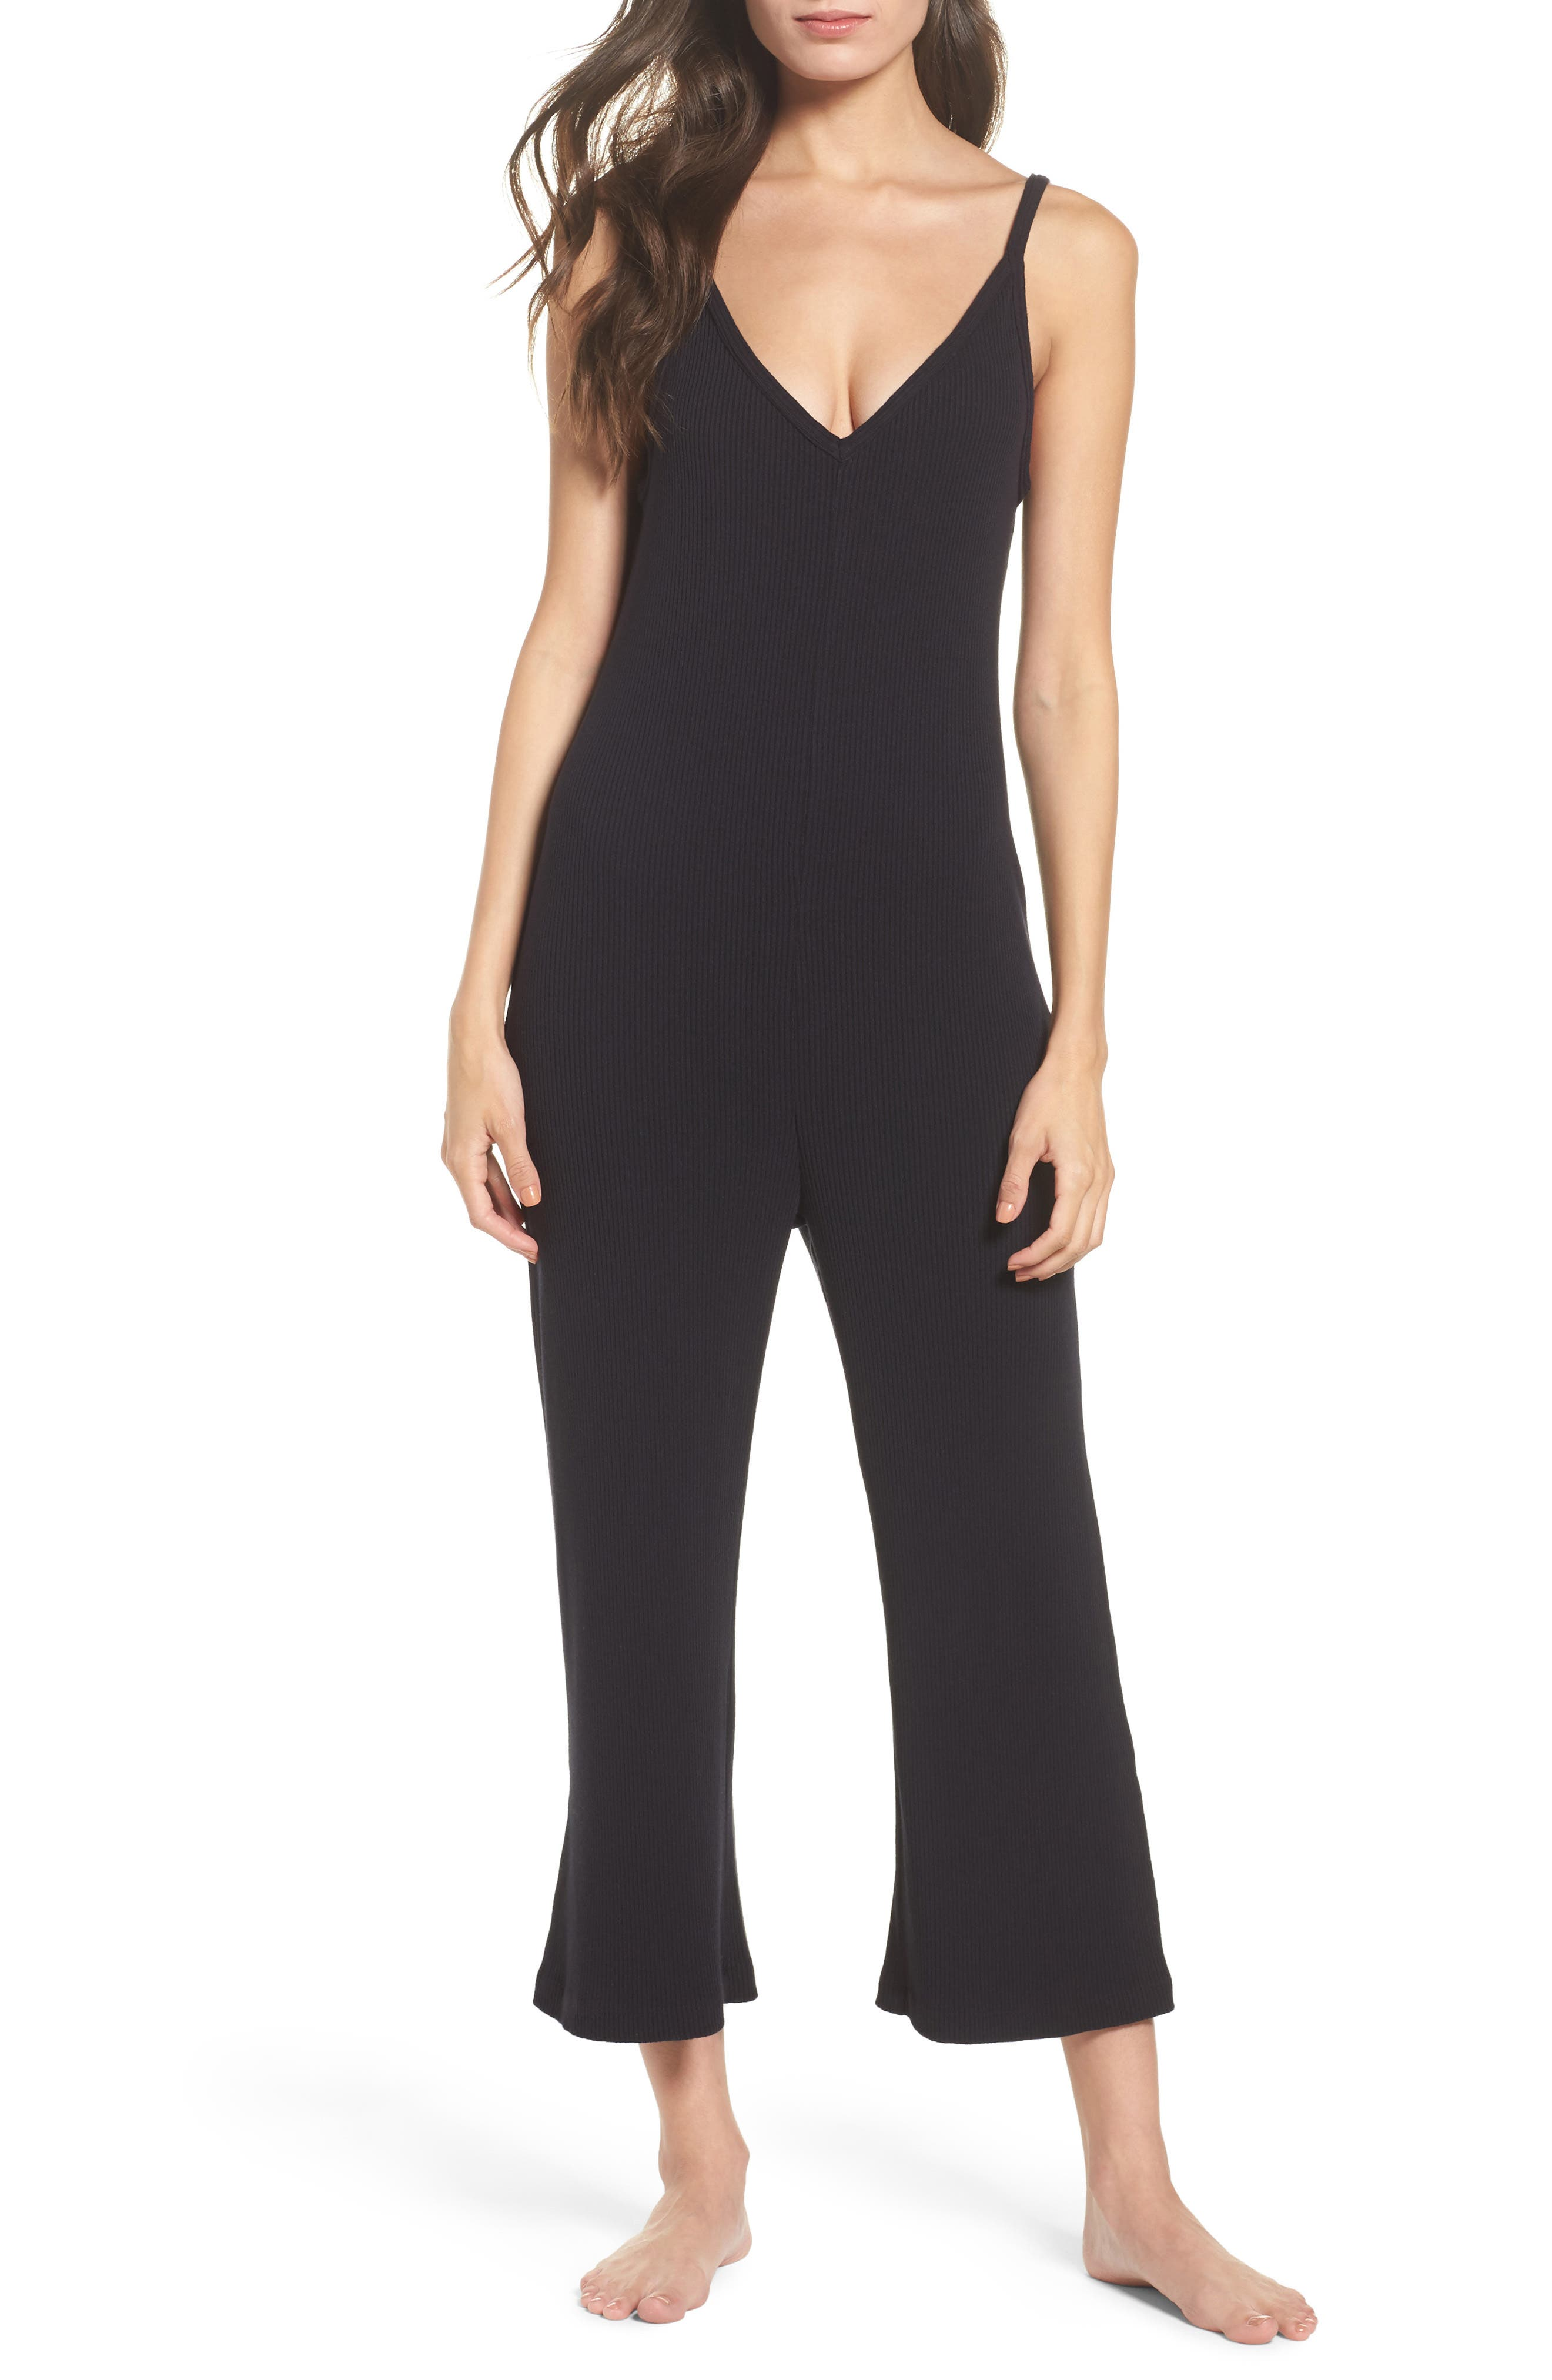 Naomi Knit Lounge Jumpsuit,                             Main thumbnail 1, color,                             009